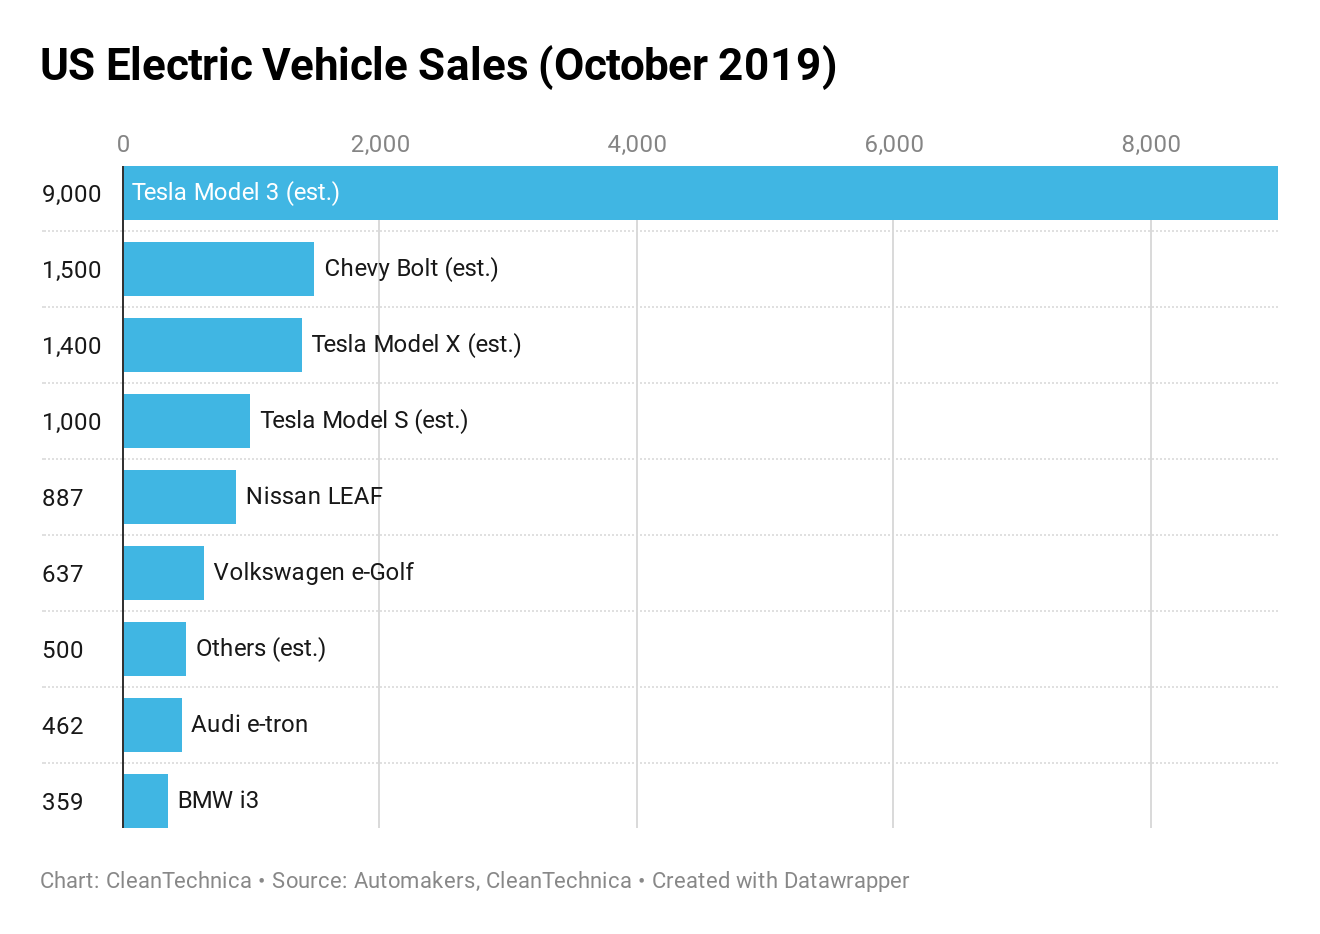 US Electric Vehicle Sales October 2019